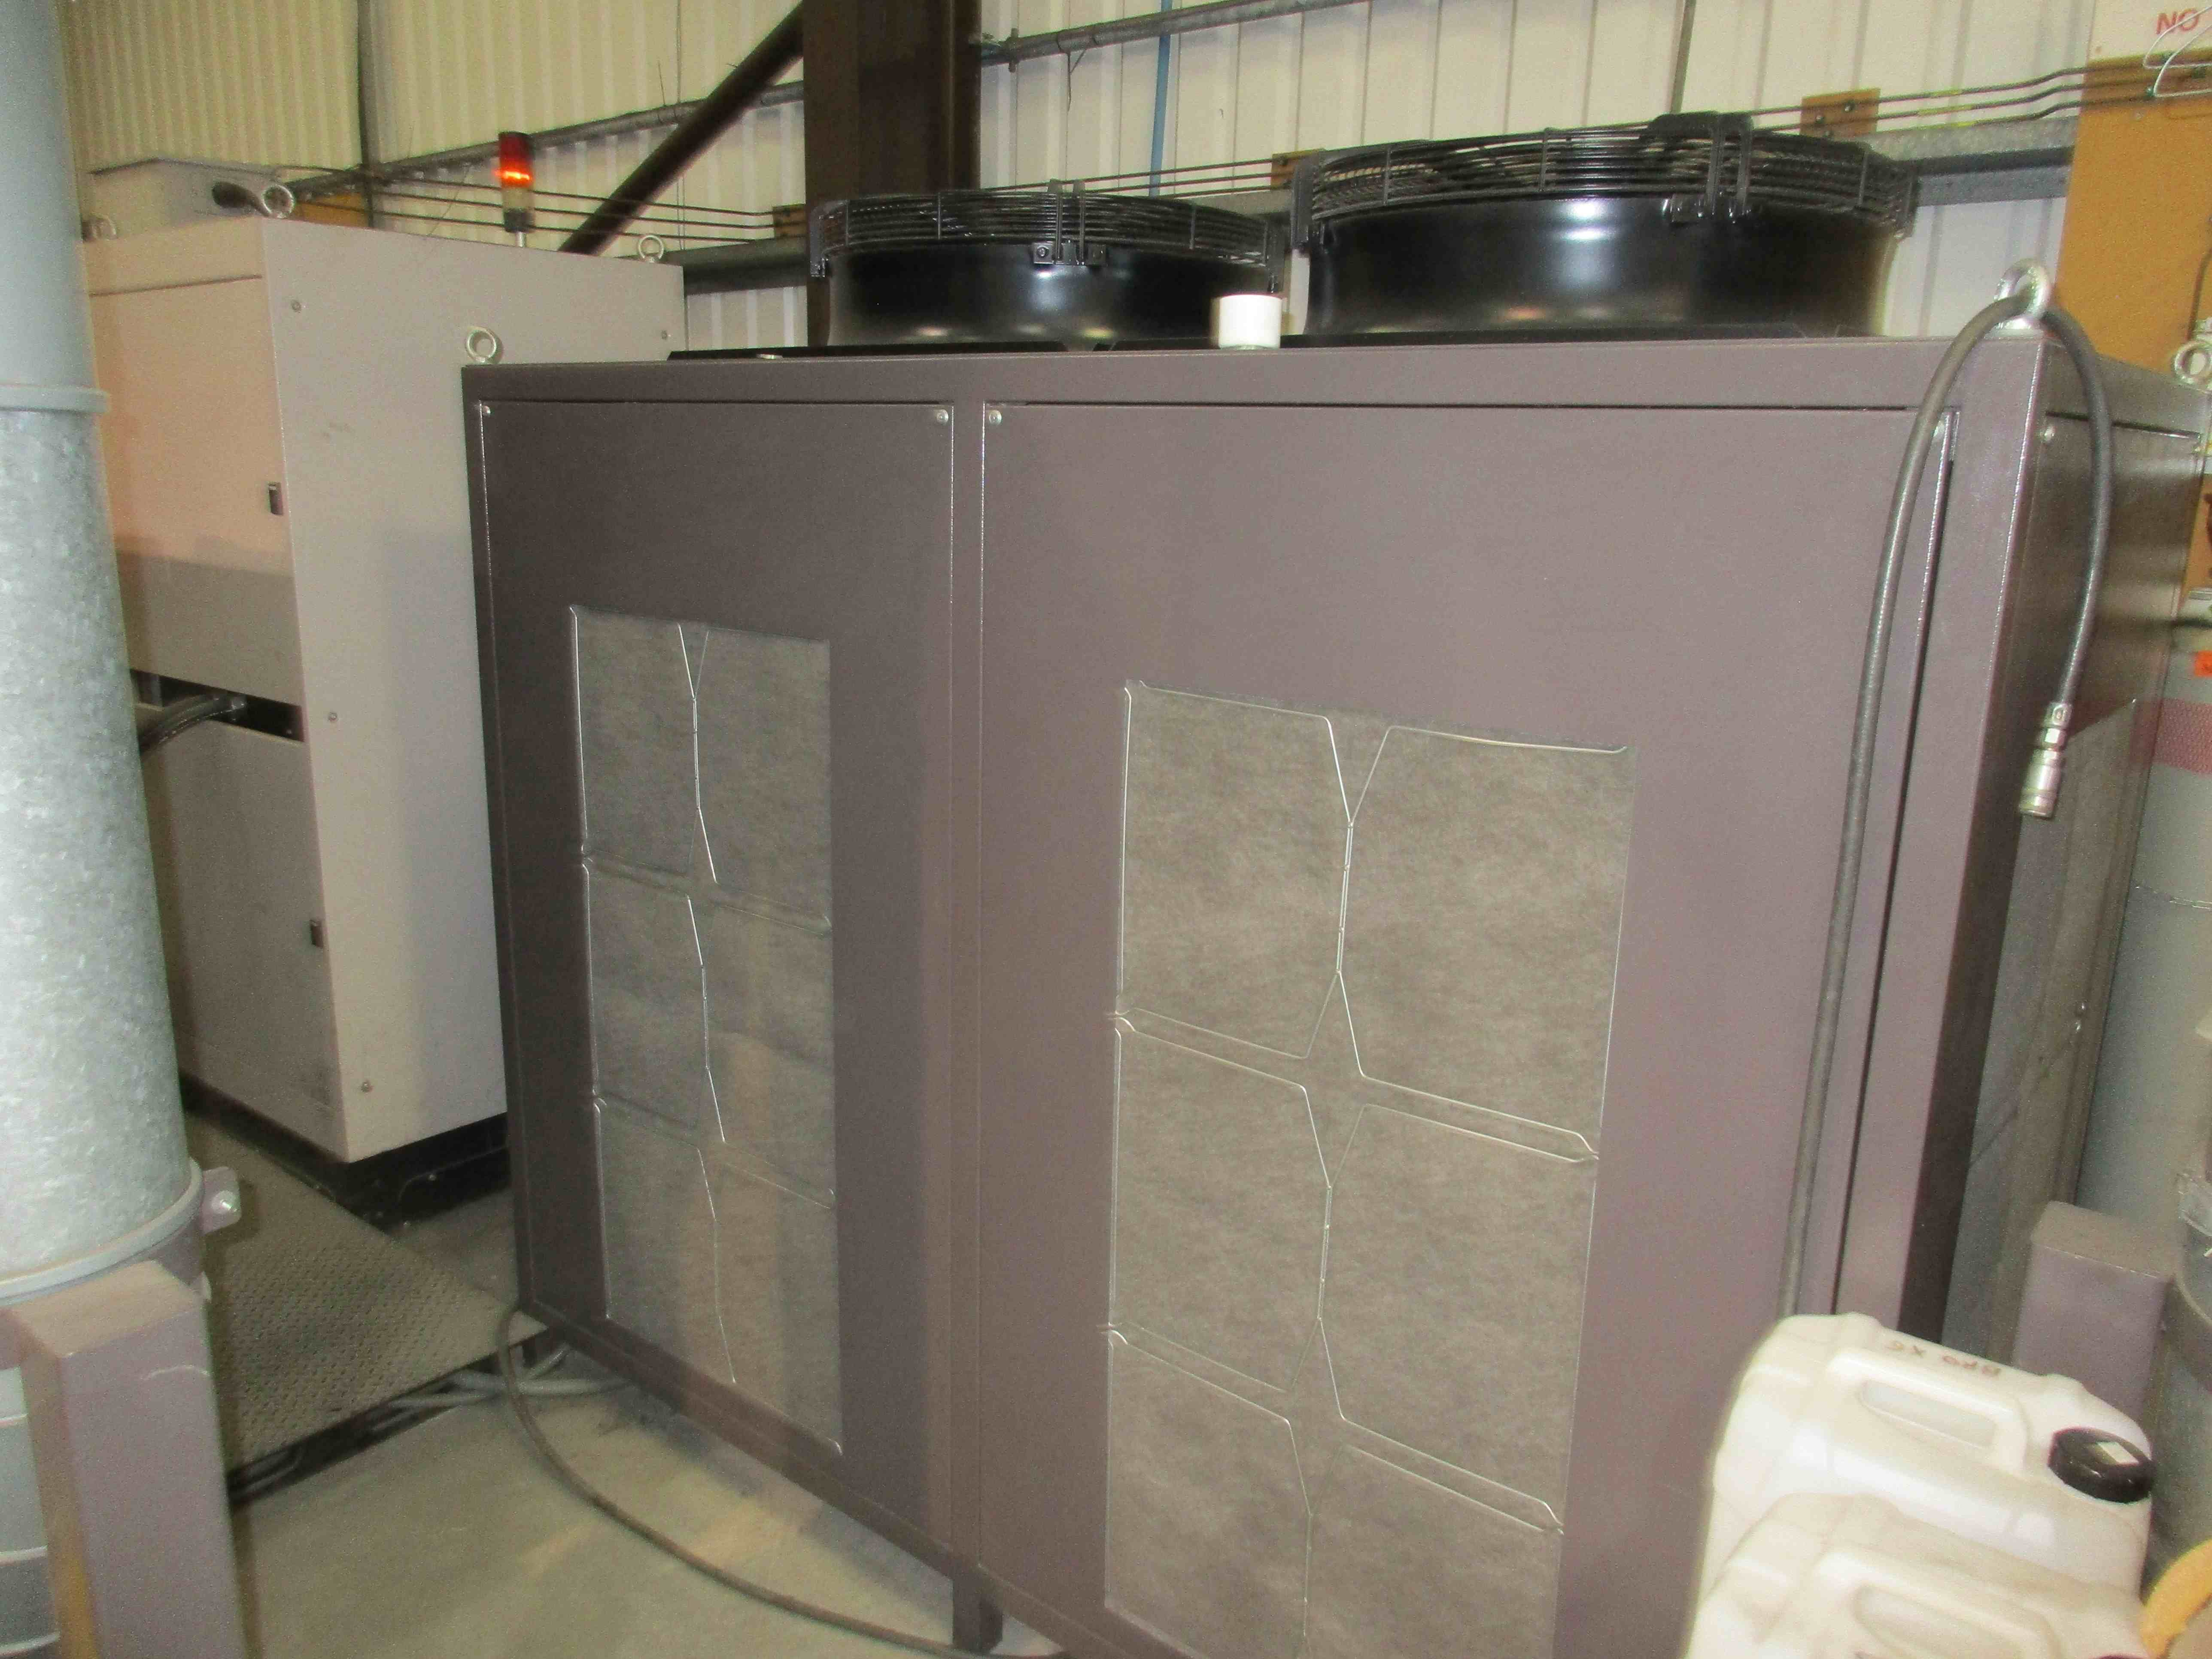 Used Bystronic Bystar 4020 Cnc Laser Cutter For Sale